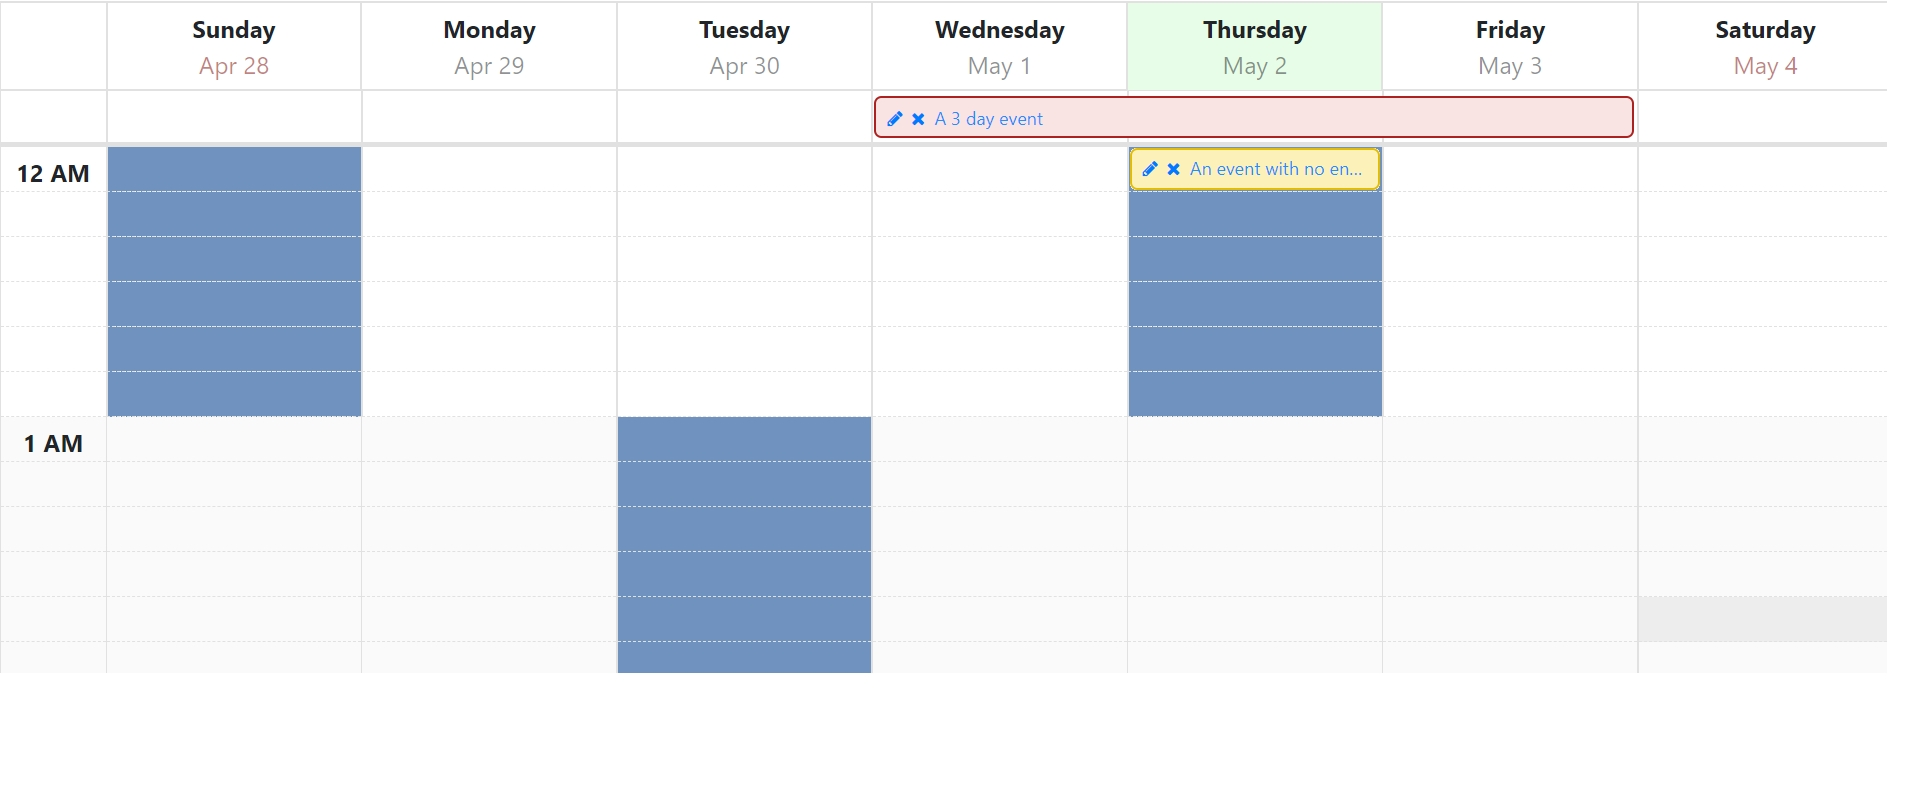 How To Use Ng-Template In Angular Calendar Week View To Show Calendar Template Week View